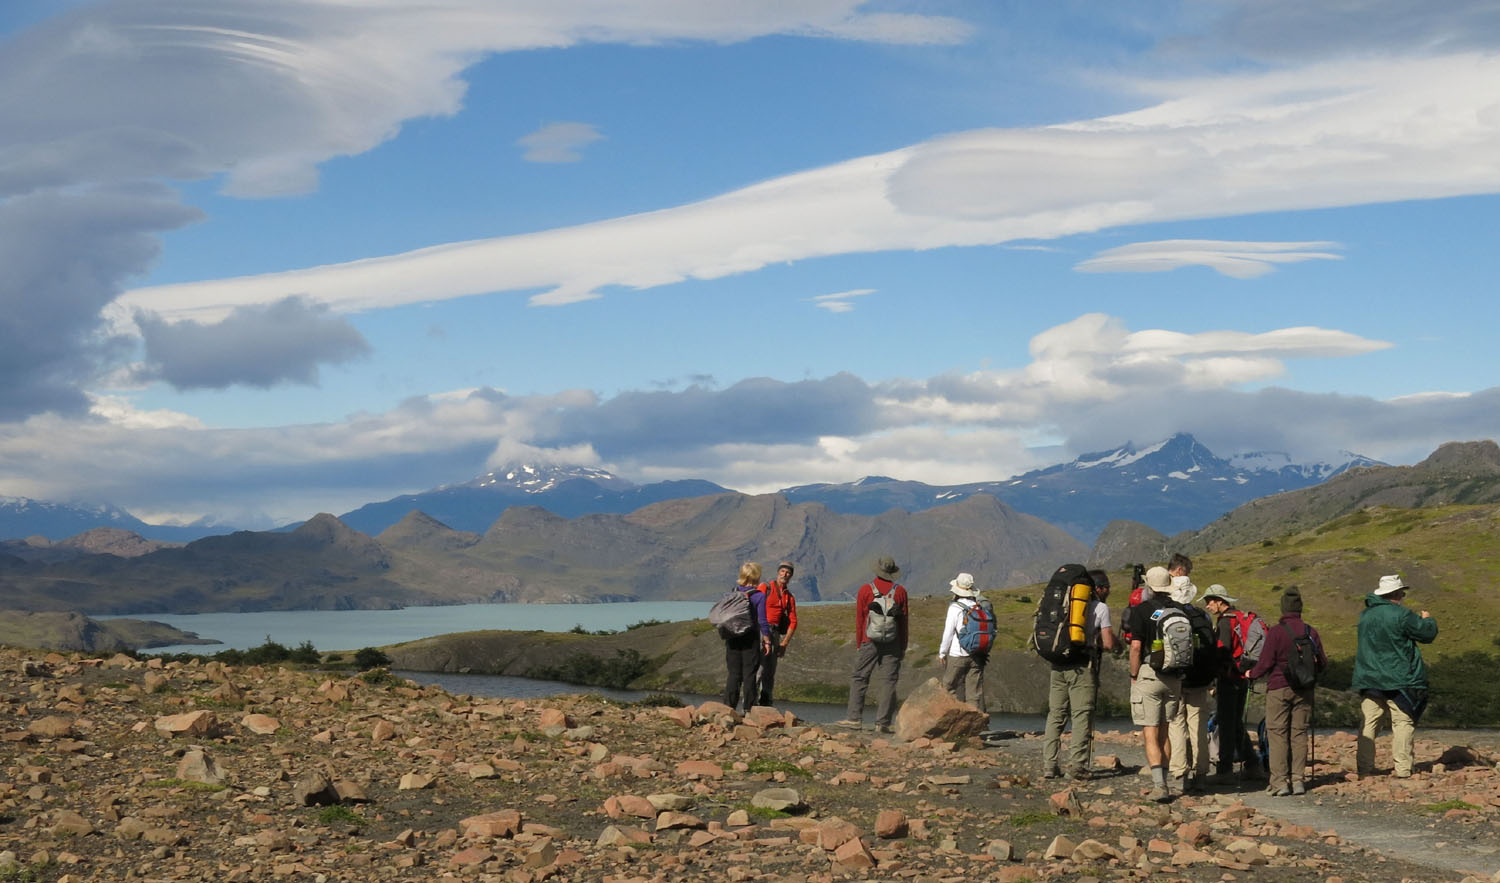 Patagonia-Paine-W-Trek-Day1-Torres-Del-Paine-Hike